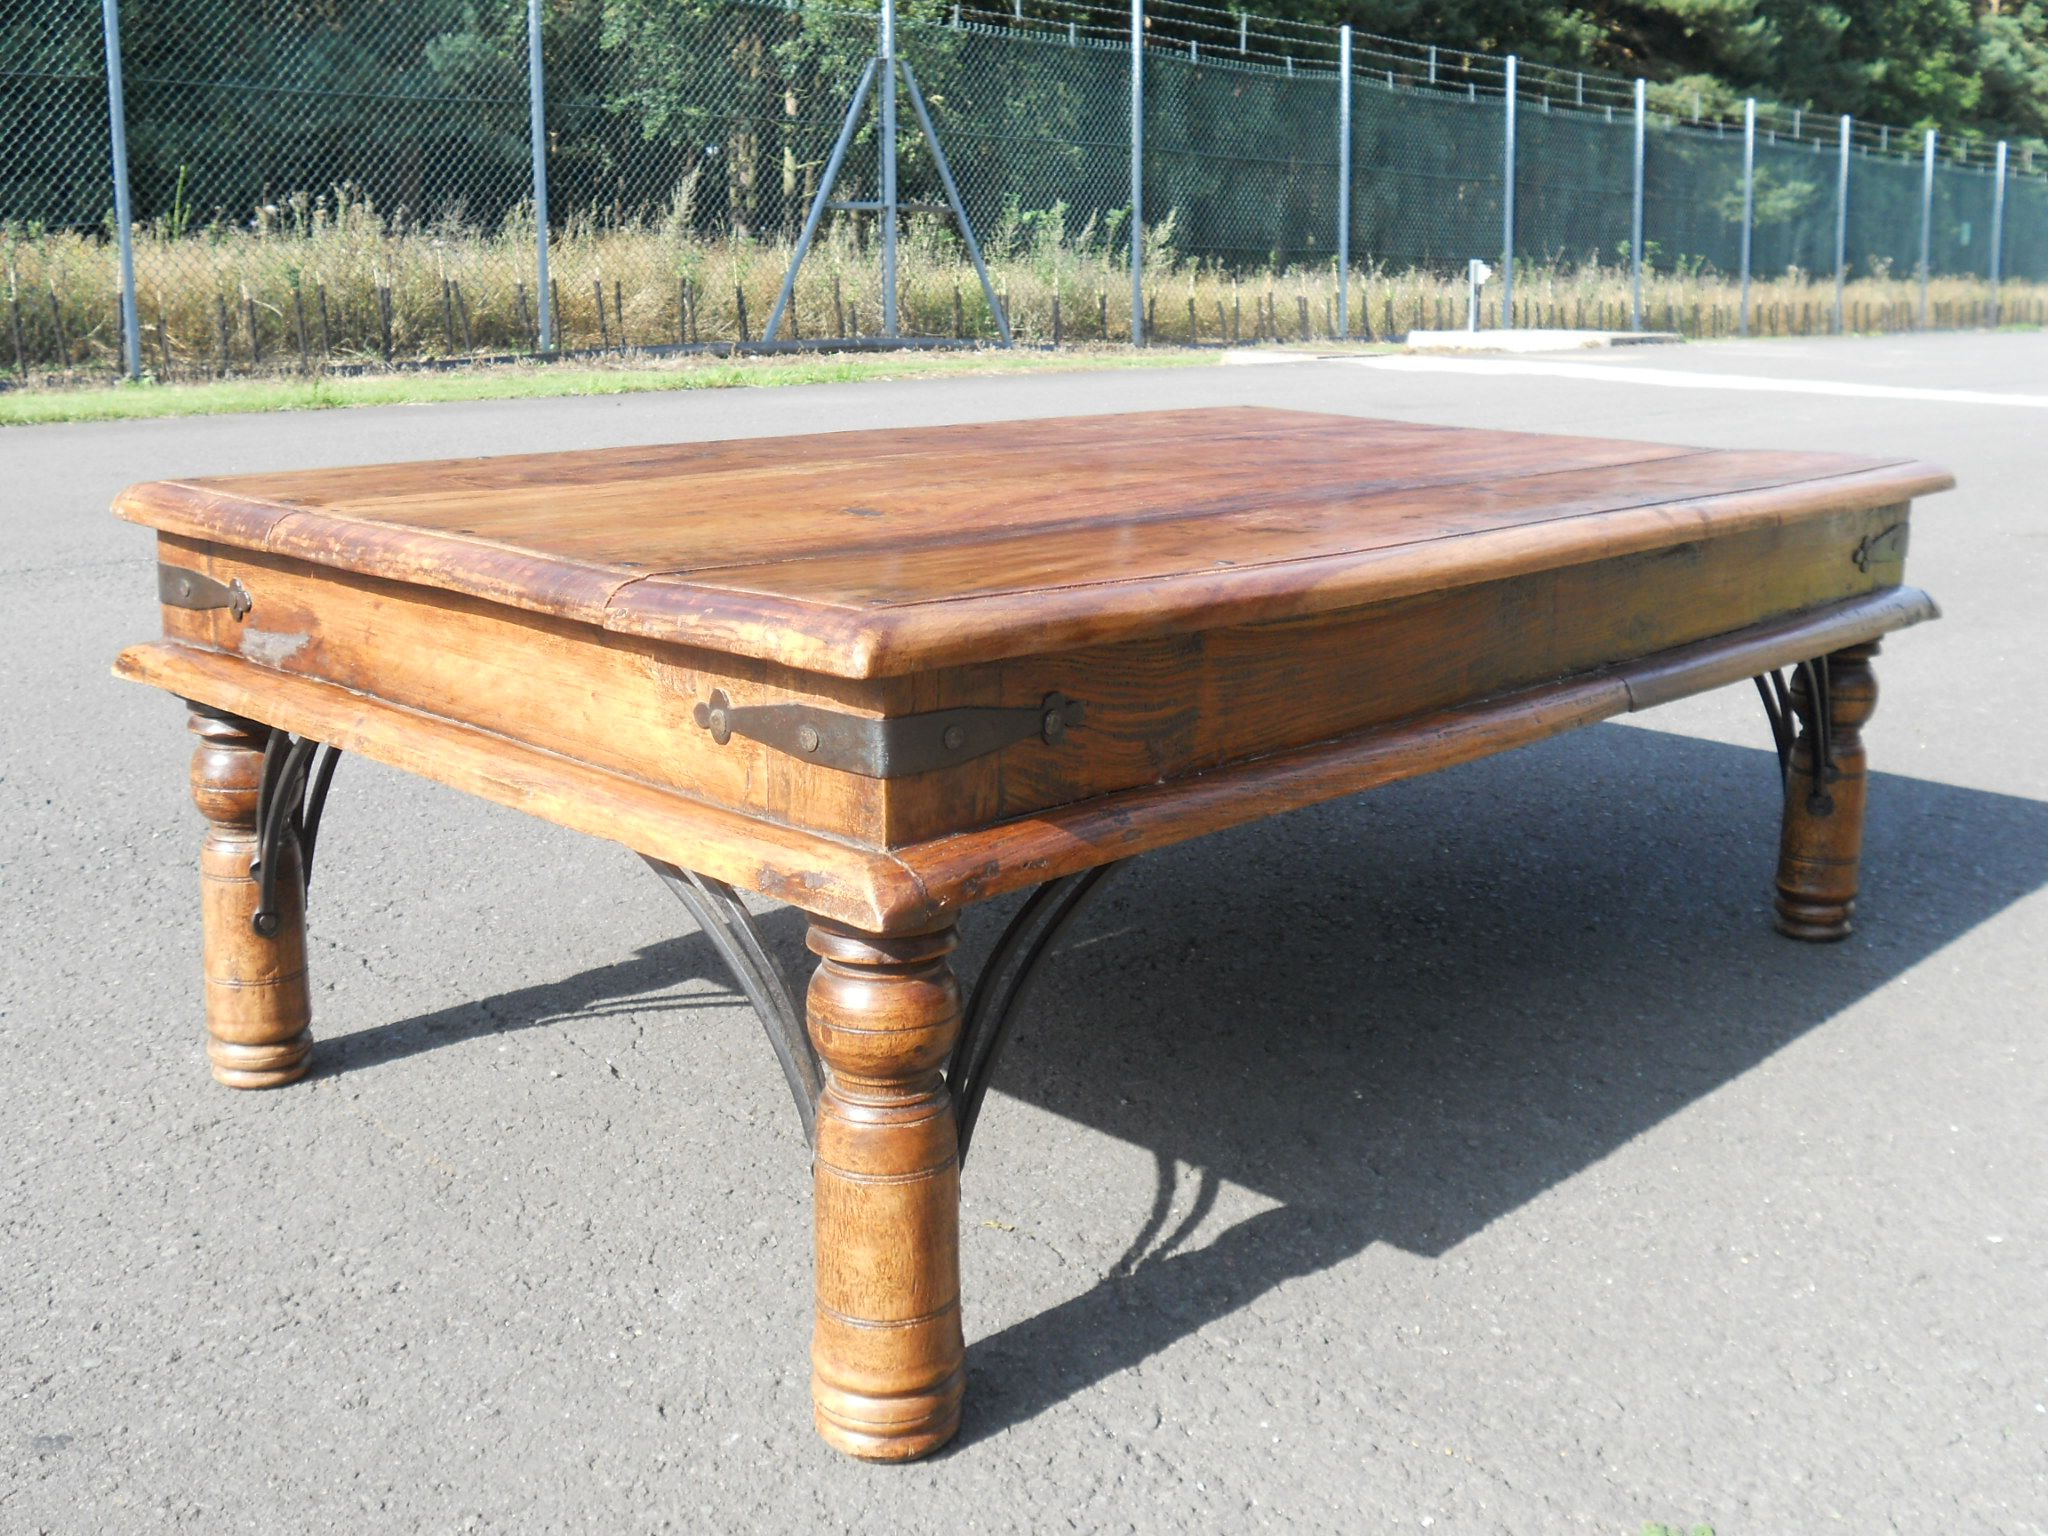 Sold large rustic wooden coffee table for Rustic oversized coffee table